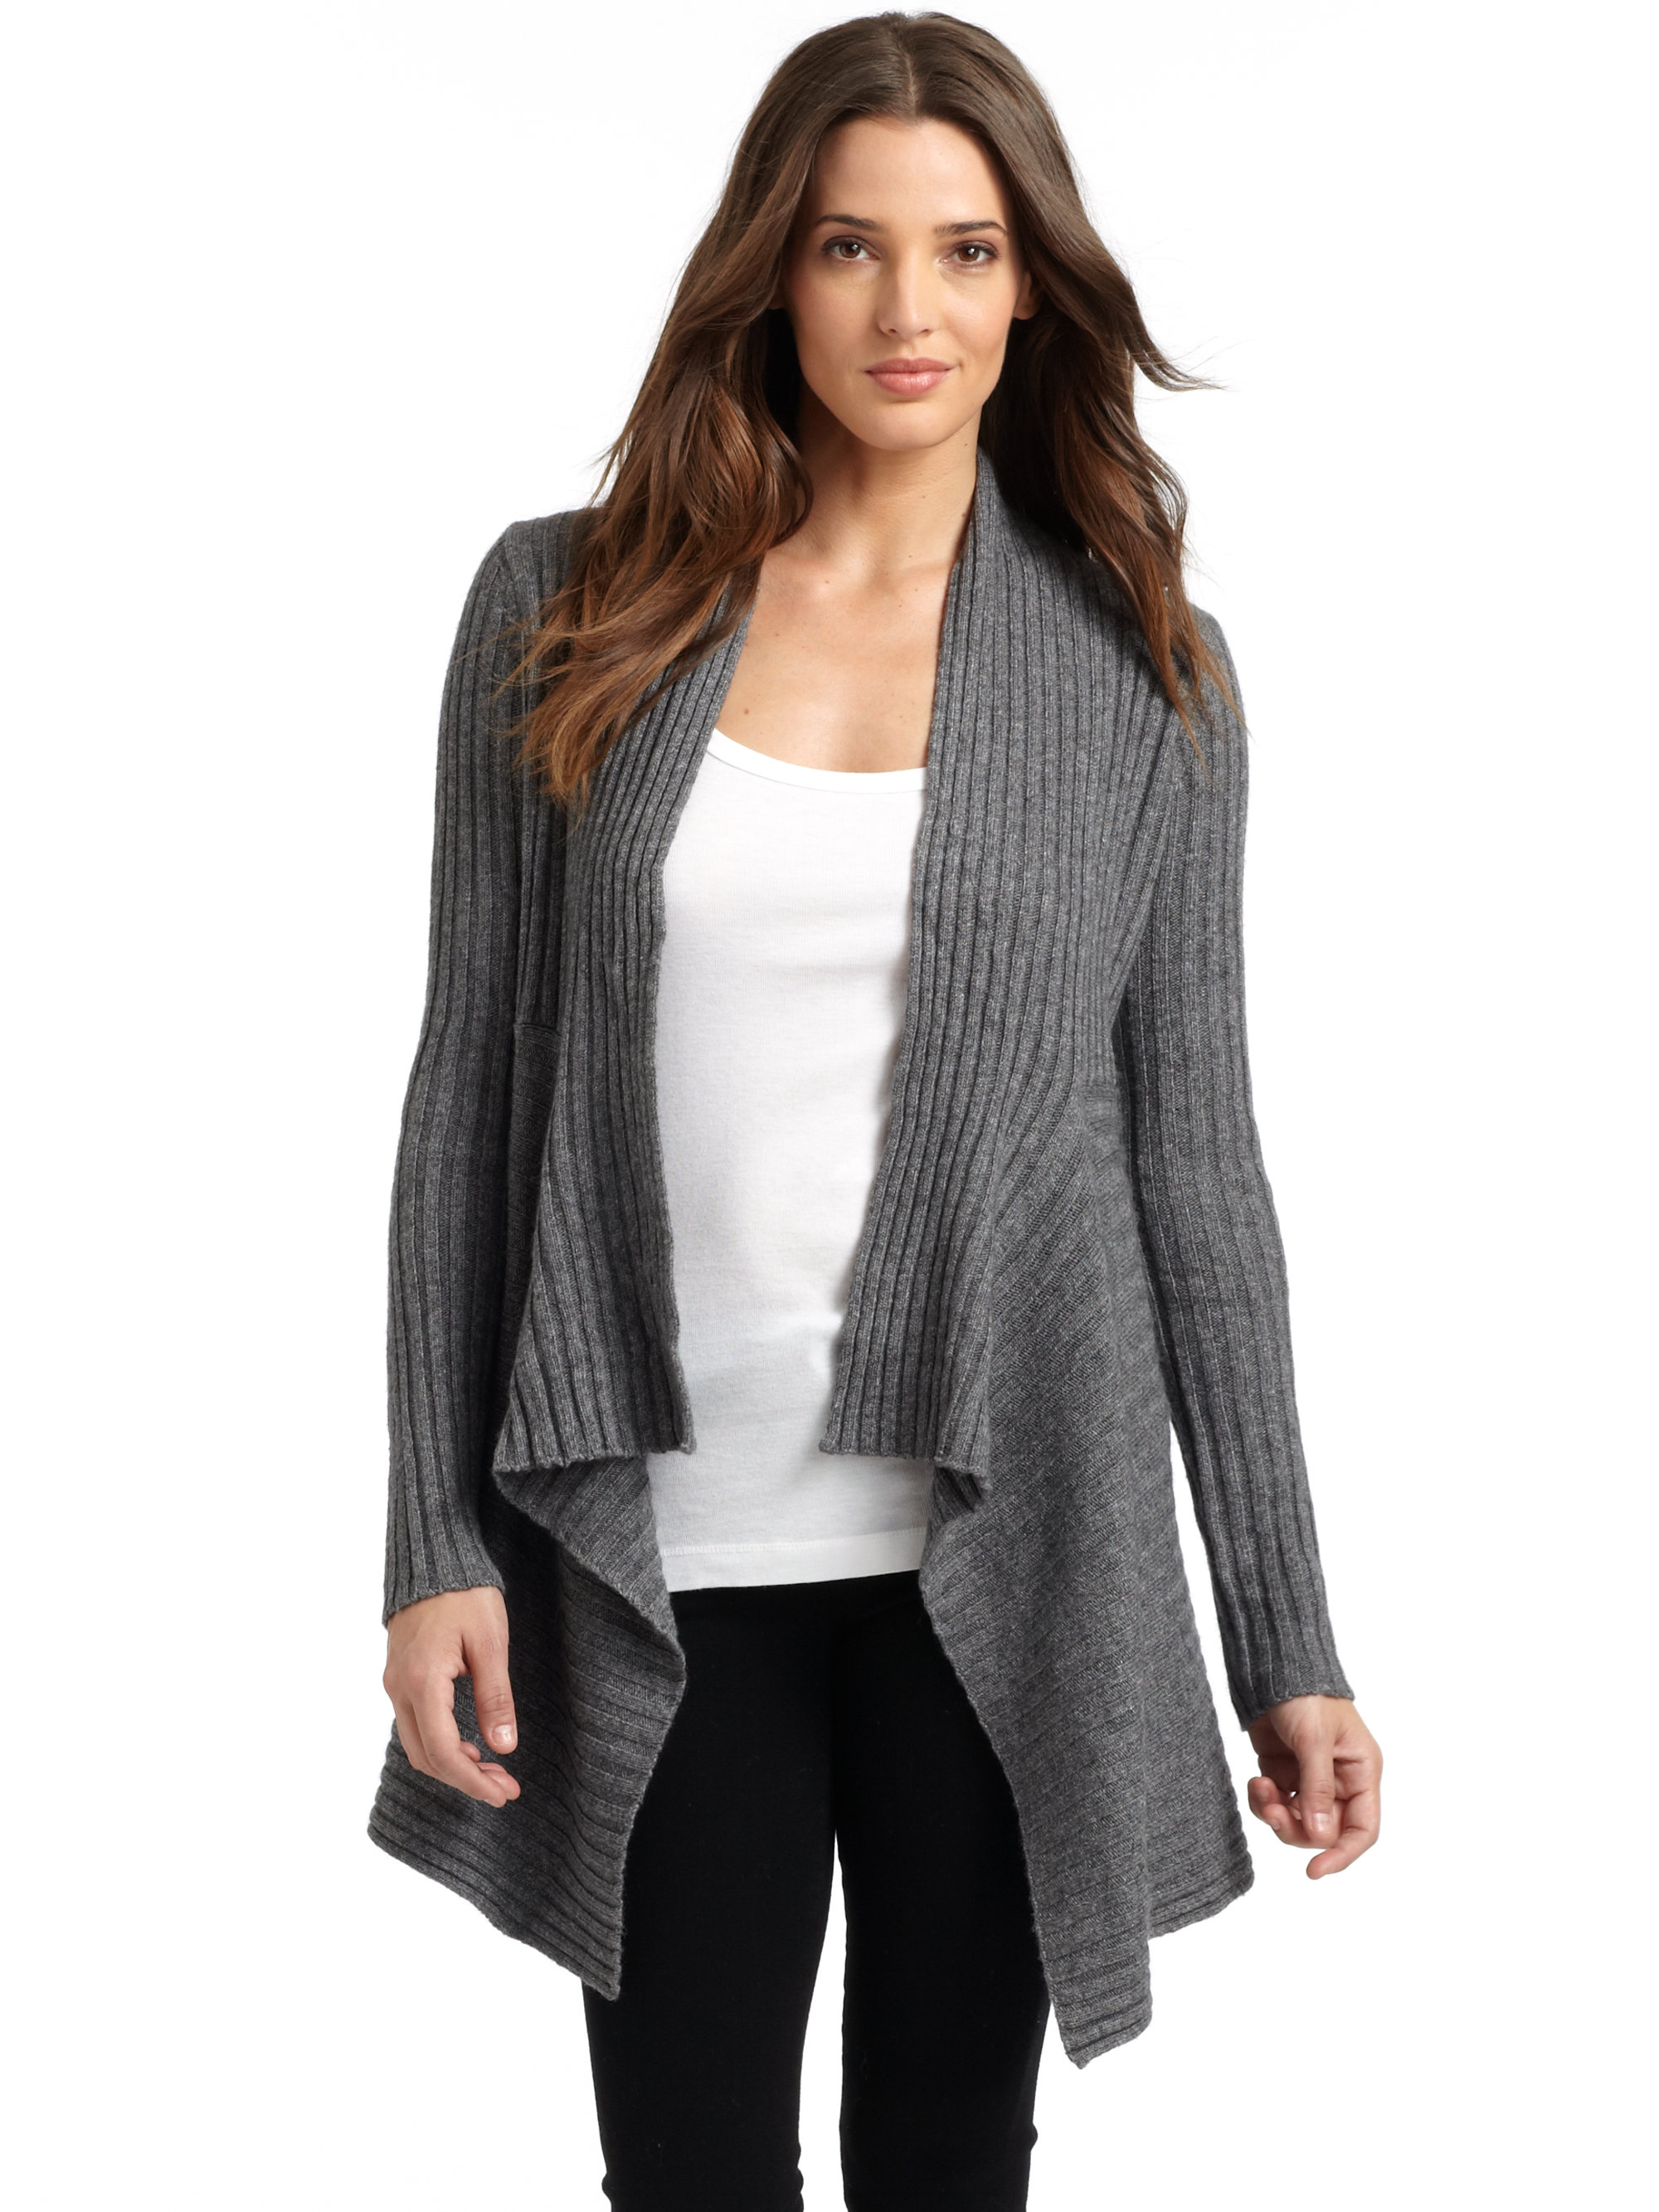 w gray lightweight cardigan sweater knit draped ld long drapes womens top products